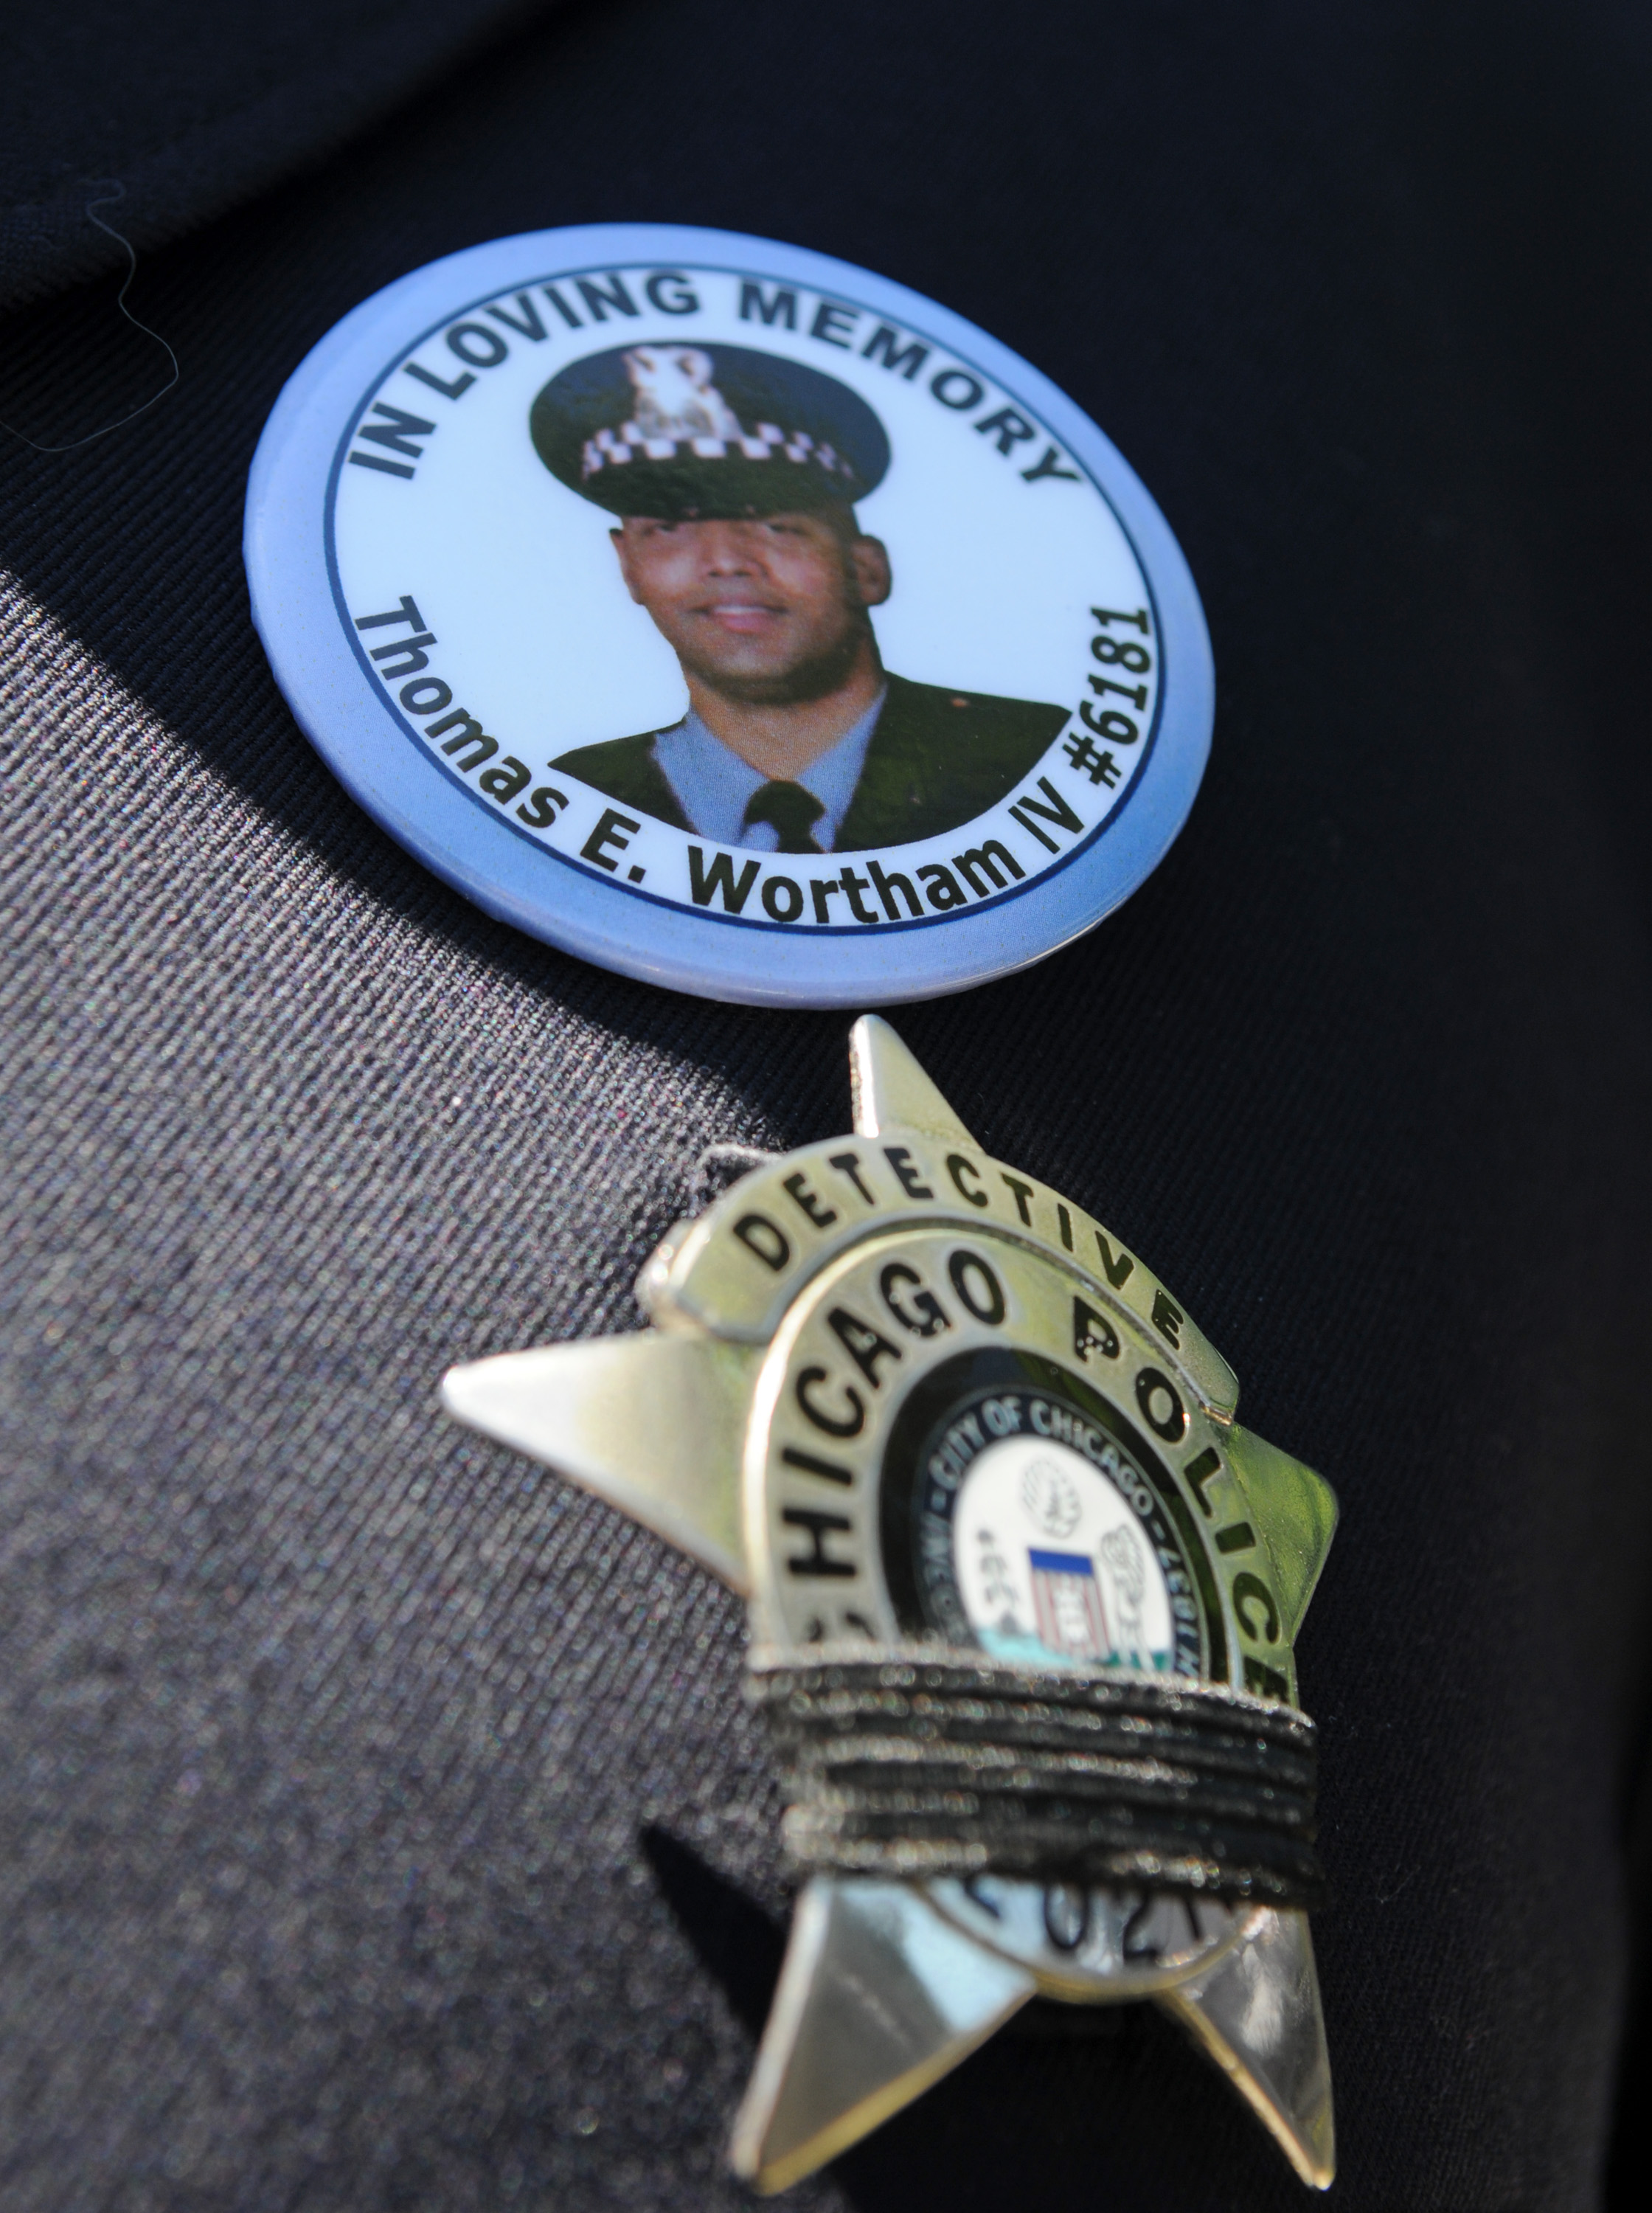 A Chicago Police officer wears a button in memory of fellow Officer Thomas Wortham IV at his funeral ten years ago.